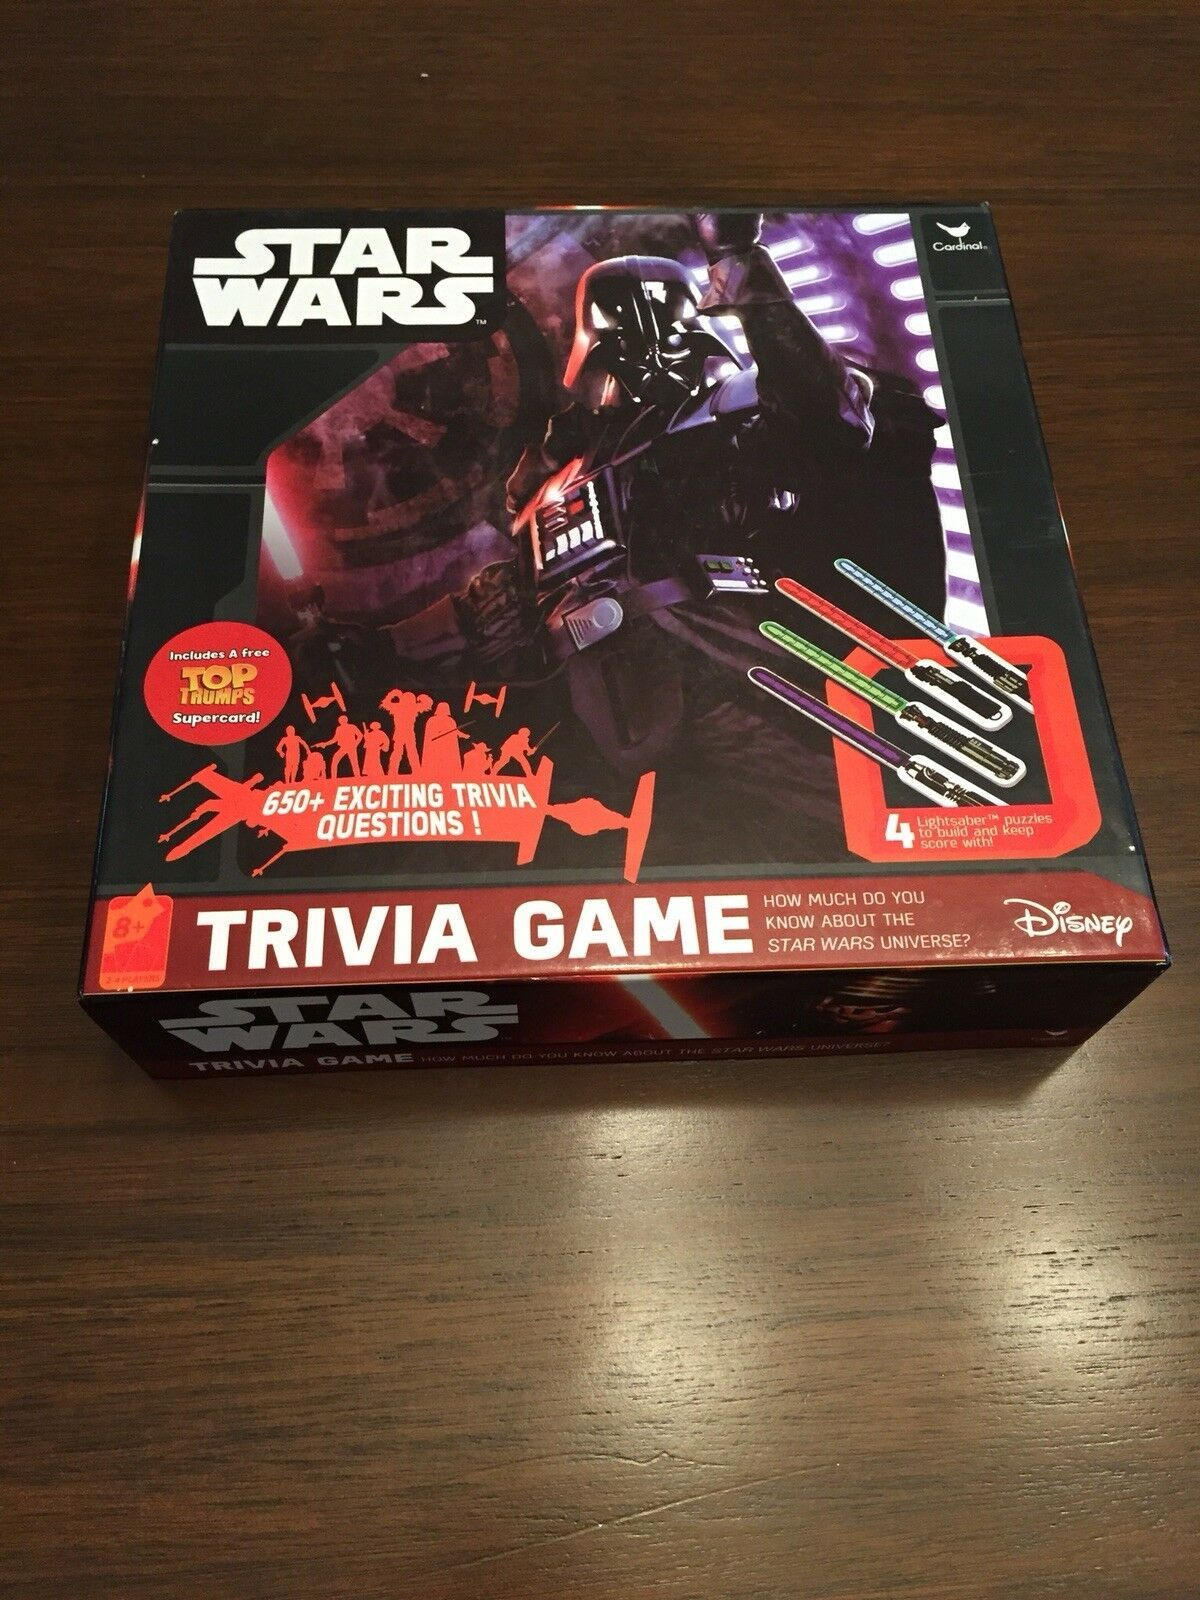 Star Wars Trivia Game Board Game Darth Vader Disney Pre-Owned Great Condition